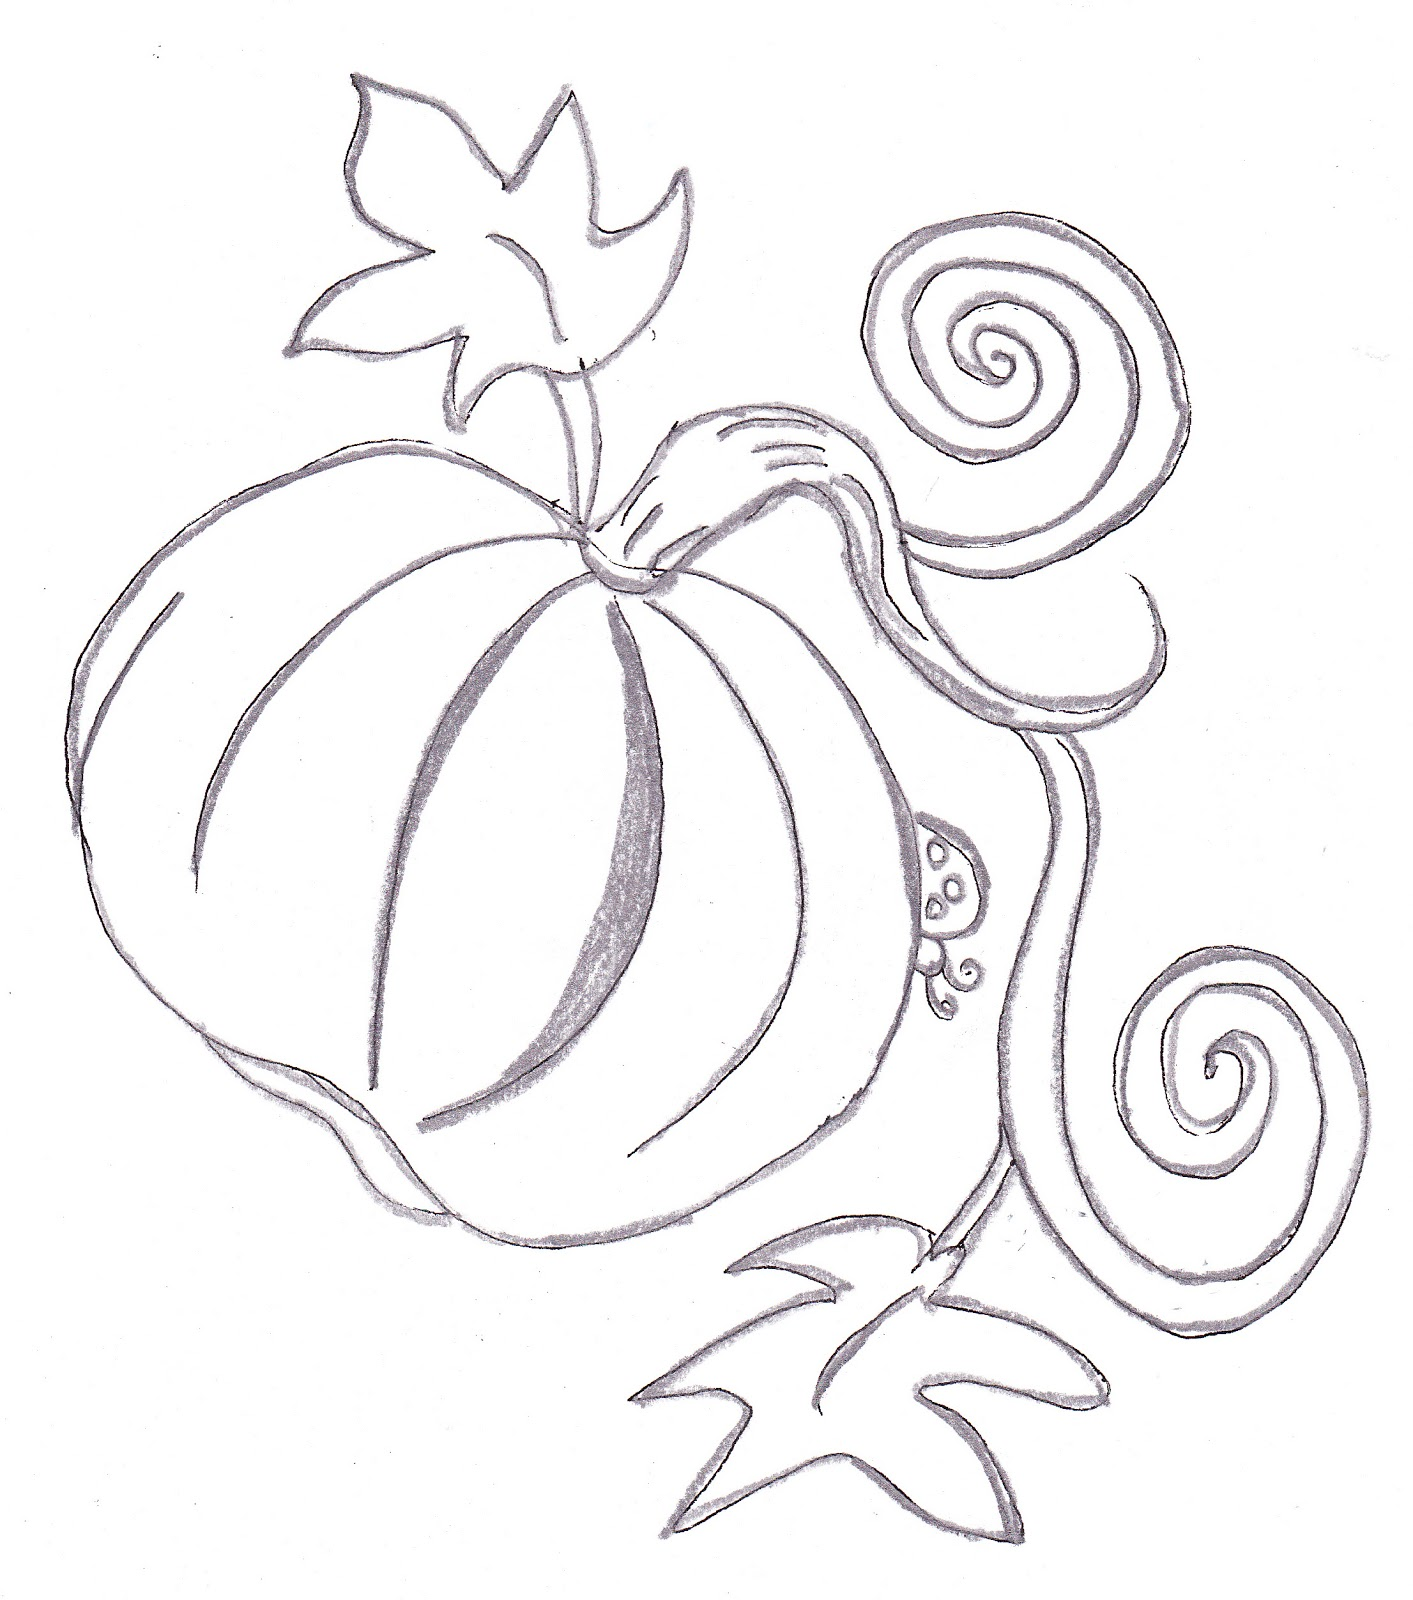 Drawn pumpkin themed For with from pumpkin leaves